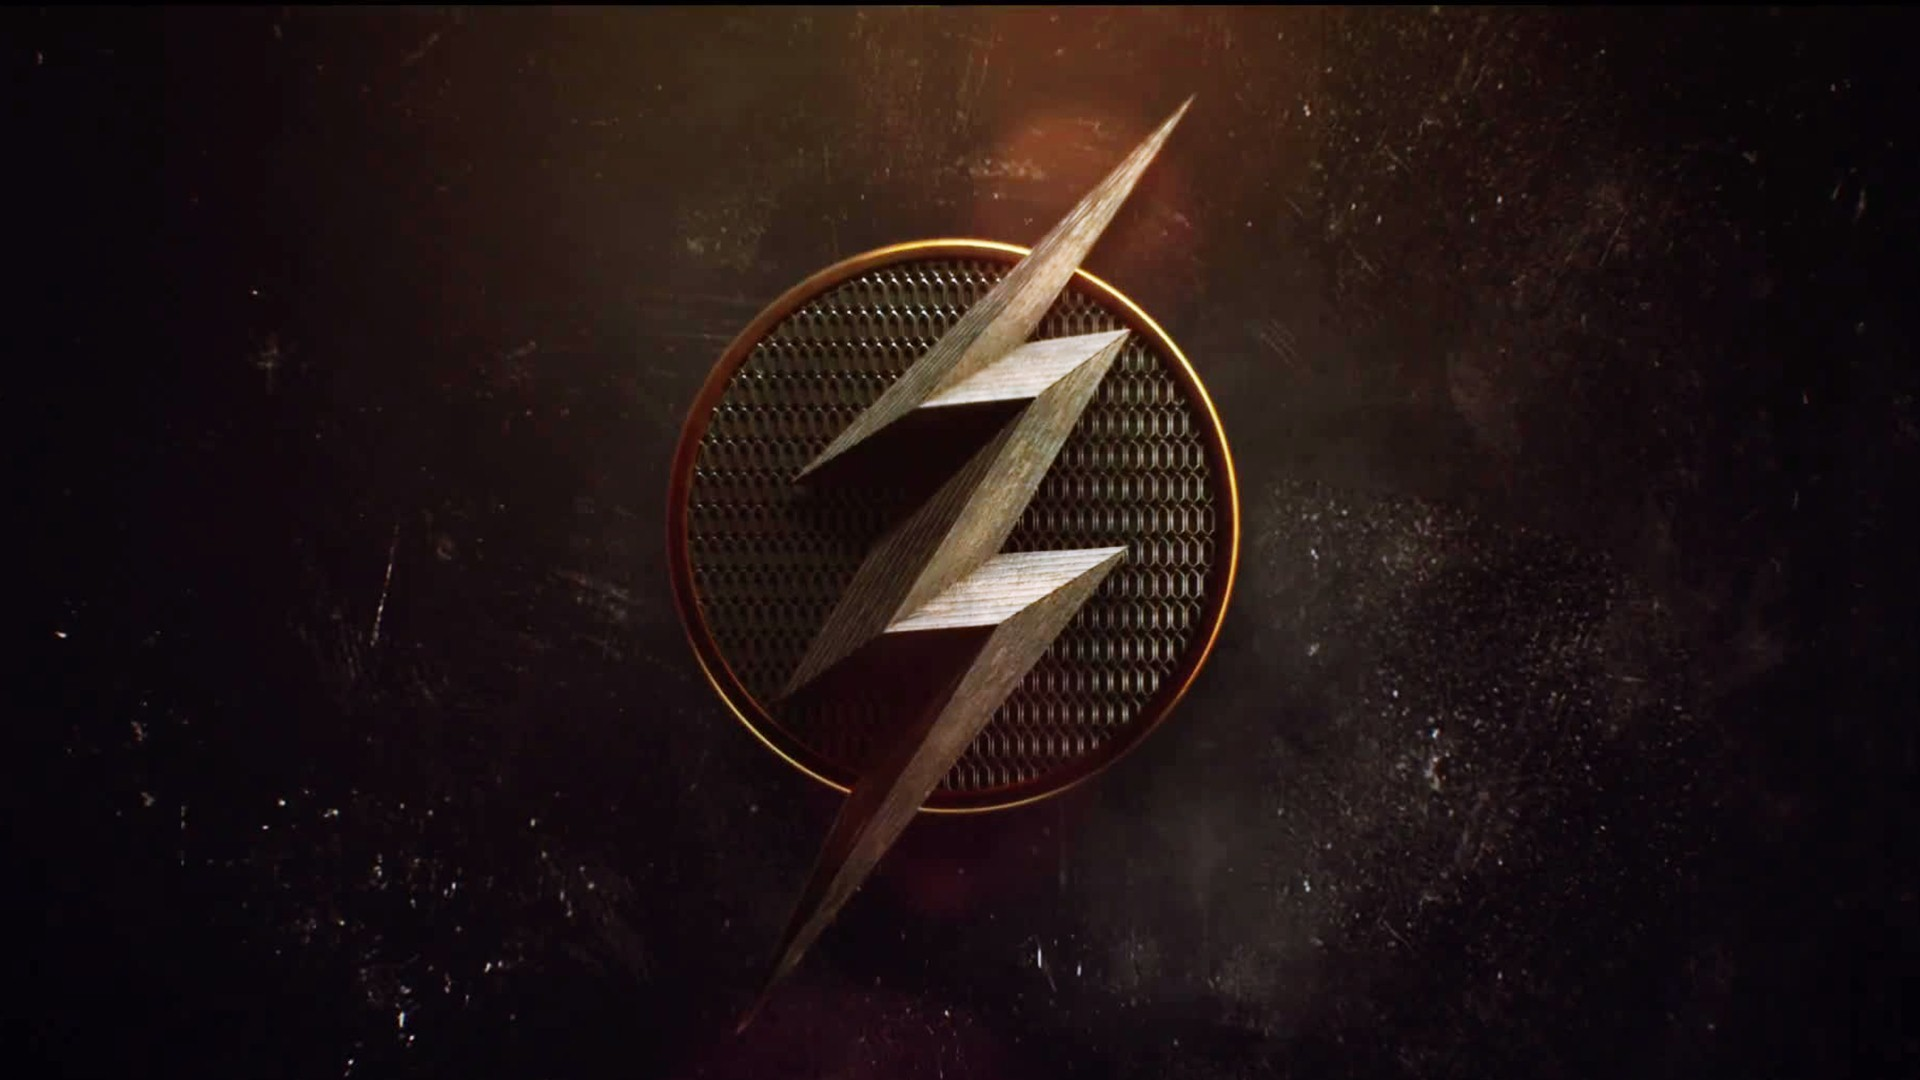 1920x1080 HD Wallpaper Barry Allen The Flash Computer Wallpapers Desktop 1920A 1080 Symbol